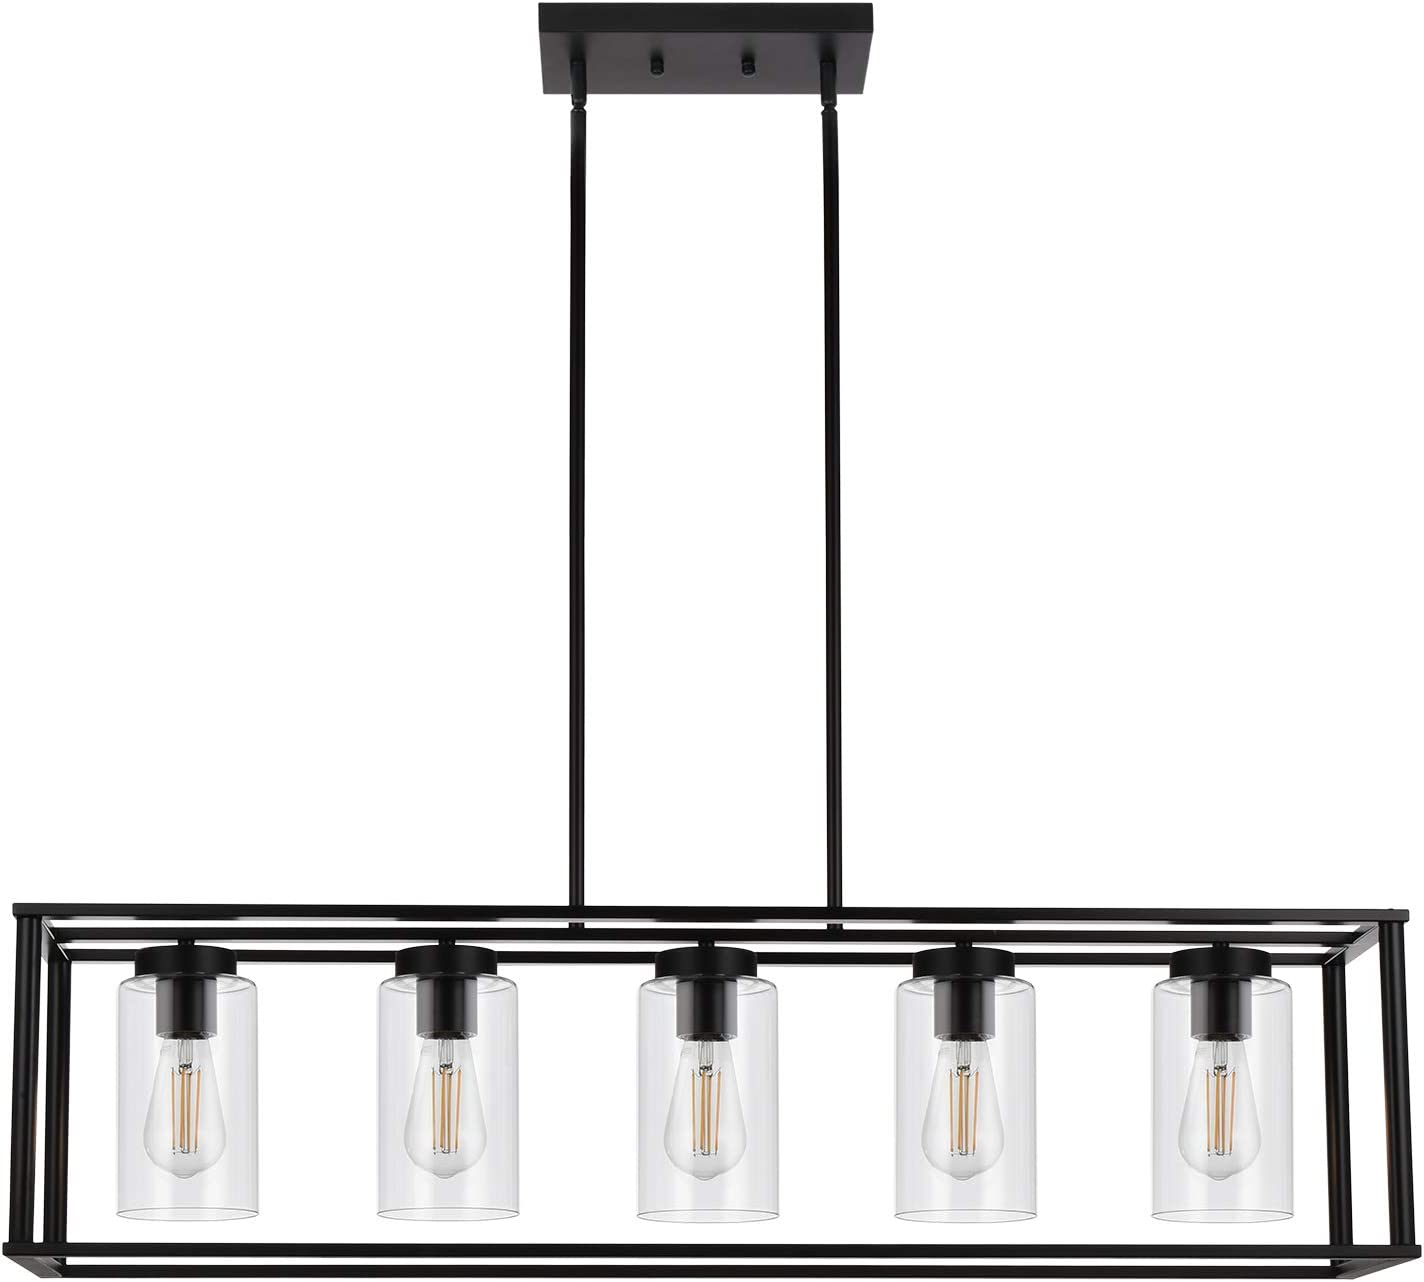 VINLUZ Farmhouse Chandeliers Rectangle Black 5 Light Dining Room Lighting Fixtures Hanging, Kitchen Island Cage Pendant Lights Contemporary Modern Ceiling Light with Glass Shade Adjustable Rods - -